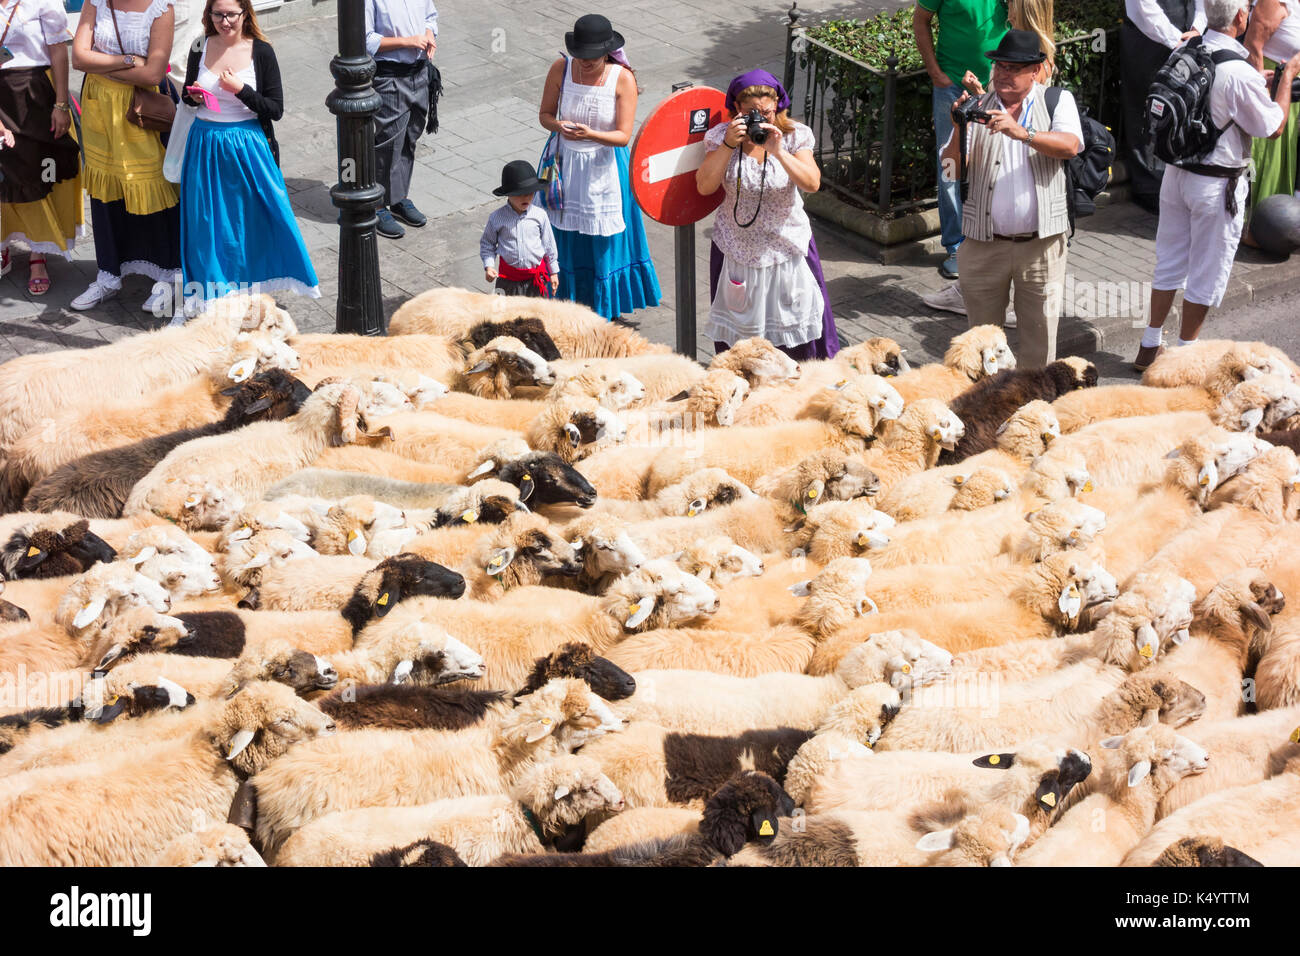 Teror, Gran Canaria, Canary Islands, Spain. 7th Sep, 2017. Every year on the 7/8th Sept, thousands of peregrinos (pilgrims) make their way to the mountain village of Teror on Gran Canaria to pay their respects to the island`s patron saint, nuestra senora del pino. PICTURED: Sheep are driven through the streets ahead of the street parade. Credit: ALAN DAWSON/Alamy Live News - Stock Image